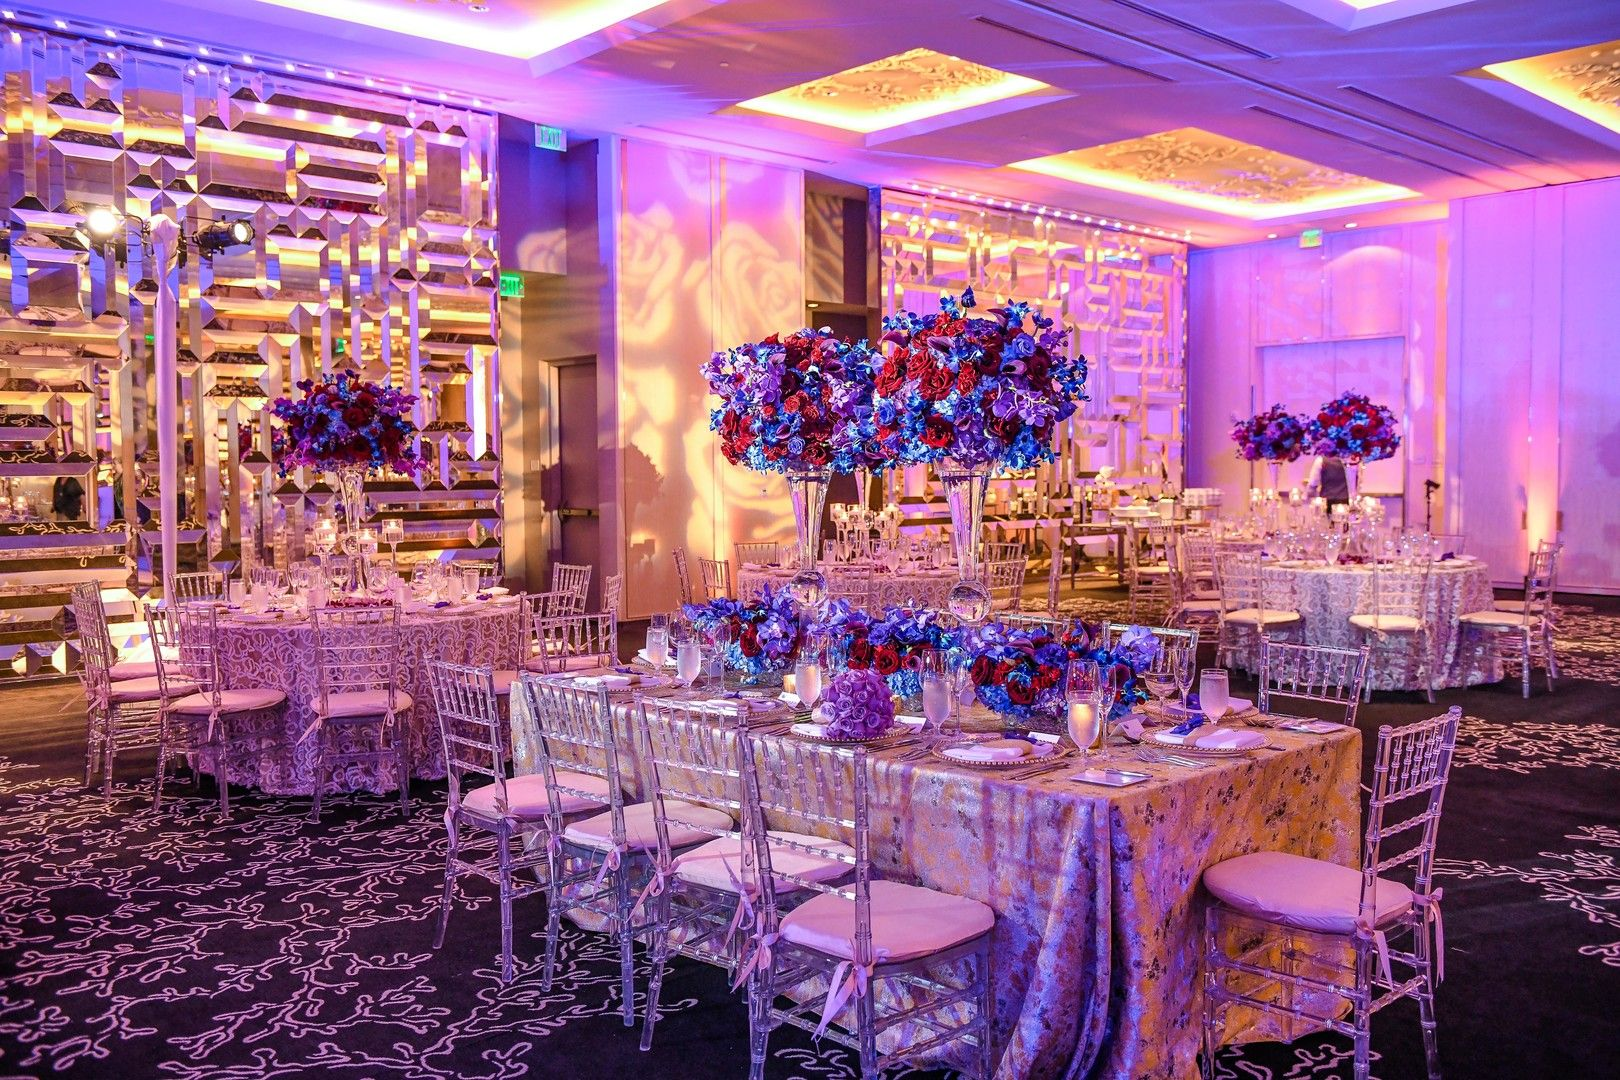 Wedding decorations pics october 2018 A Luxury Orchid Filled Miami Beach Wedding  Orchid Centerpieces